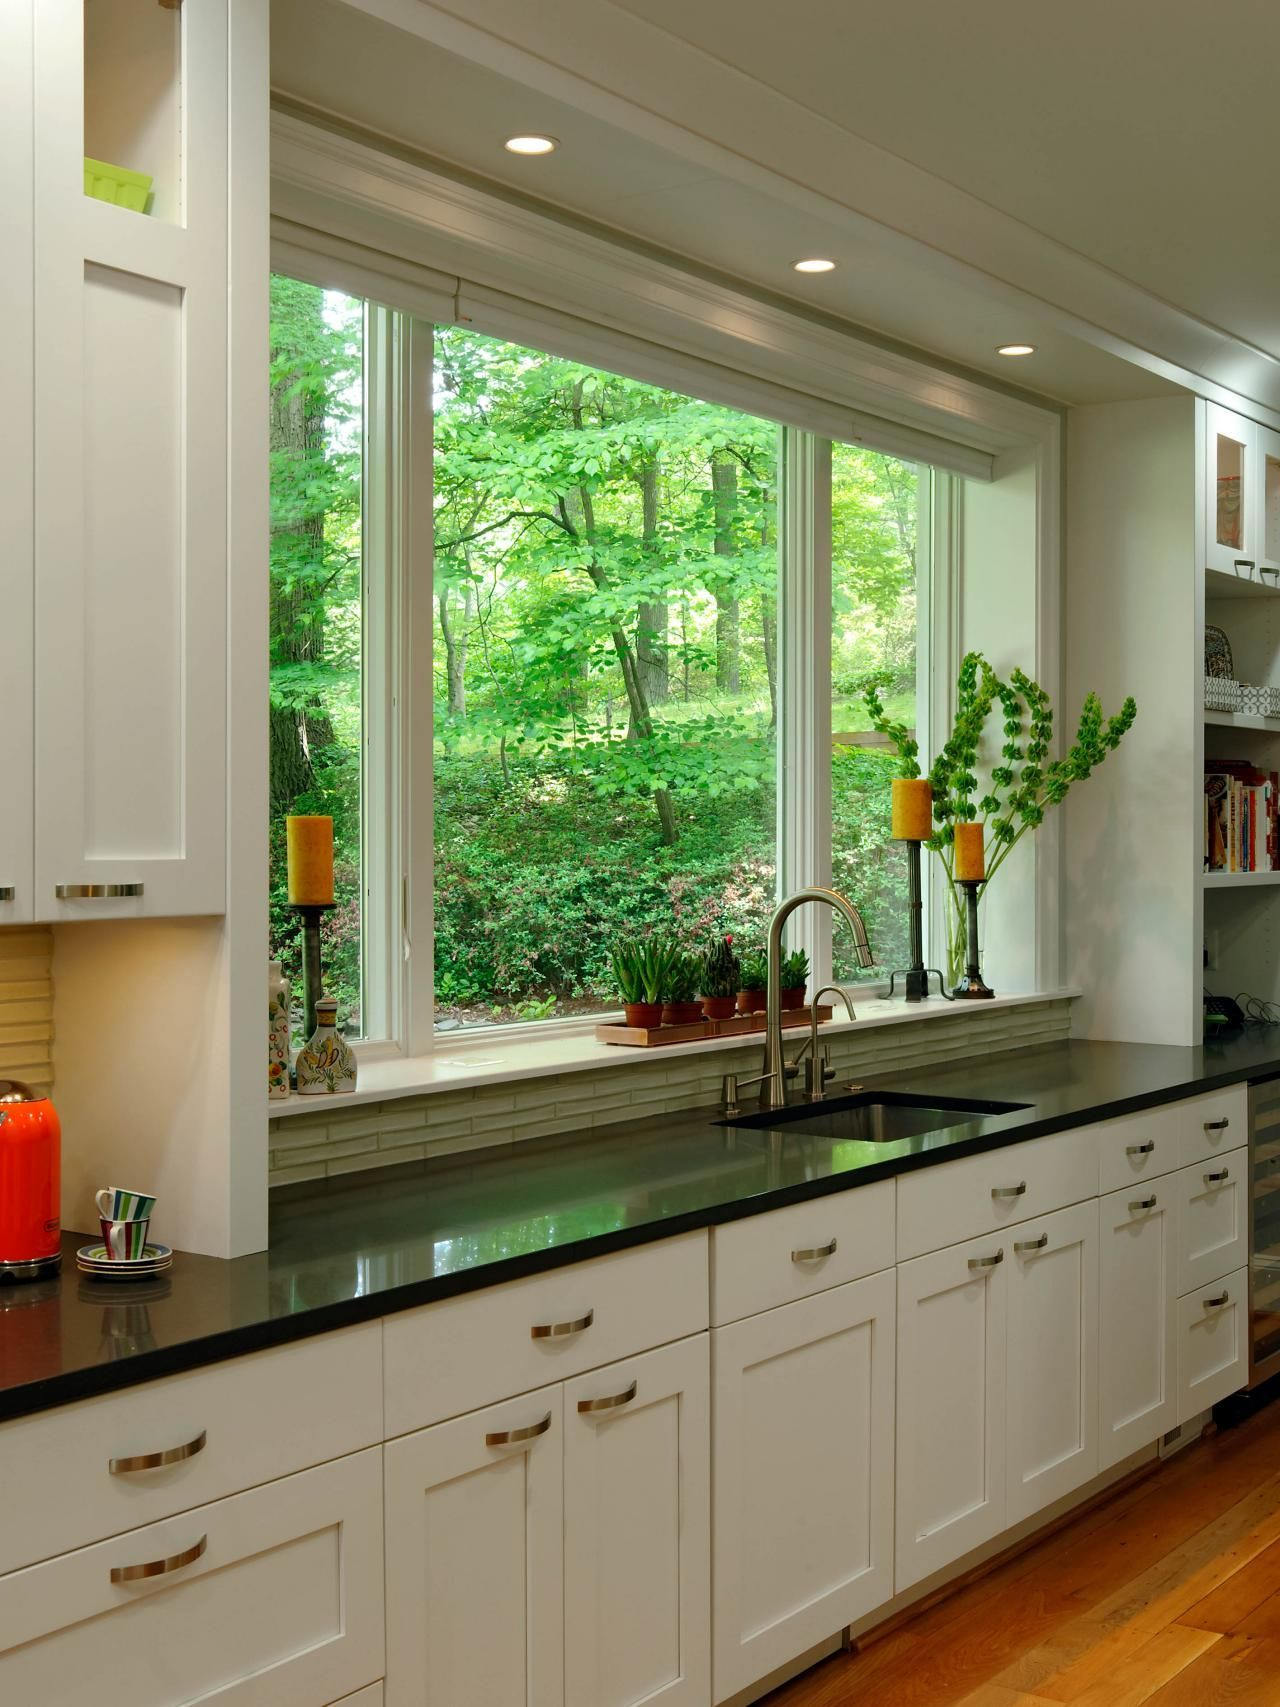 Kitchen Window Pictures The Best Options, Styles & Ideas ...